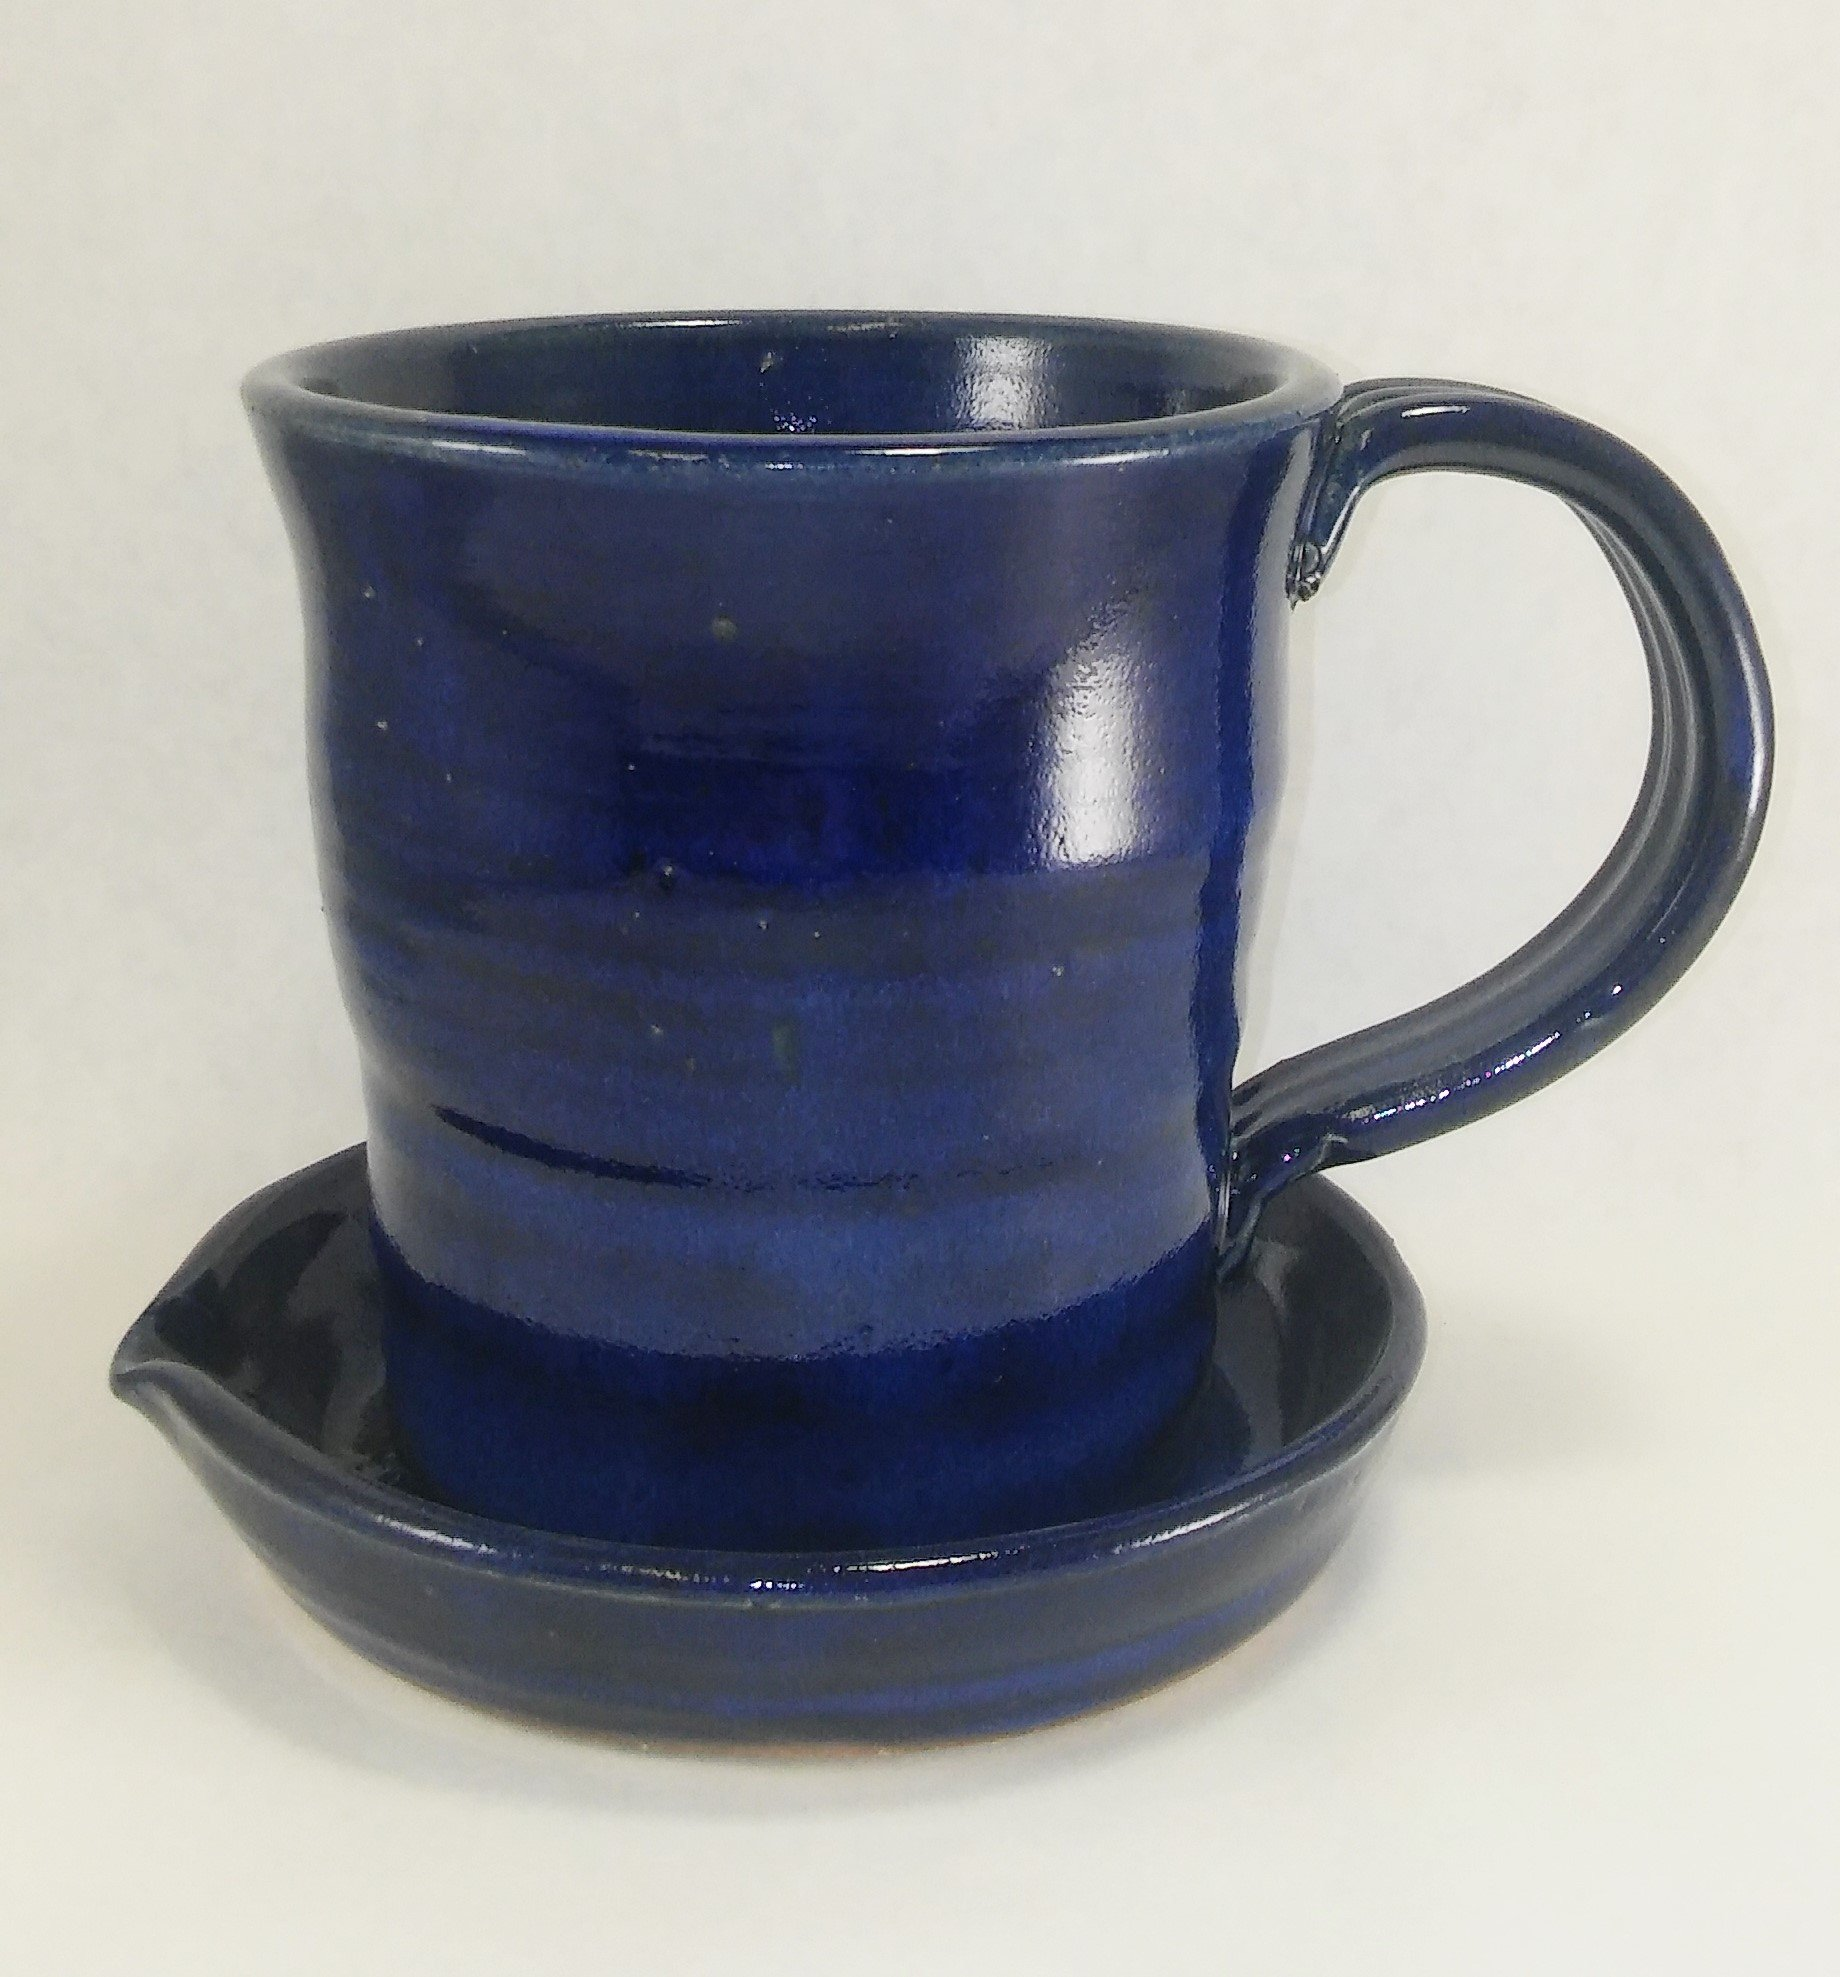 Aunt Chris' Pottery - Heavy Hand Made - Bacon Cooker - Unique New Way of Cooking Bacon - Deep Cobalt Blue Colored Glazed